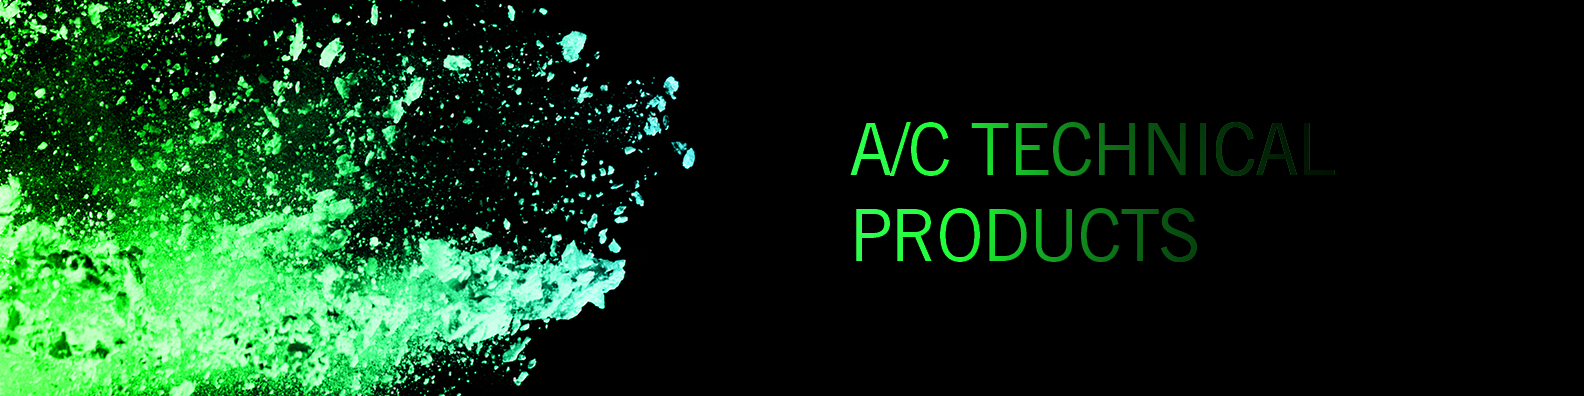 A/C Technical Product Category